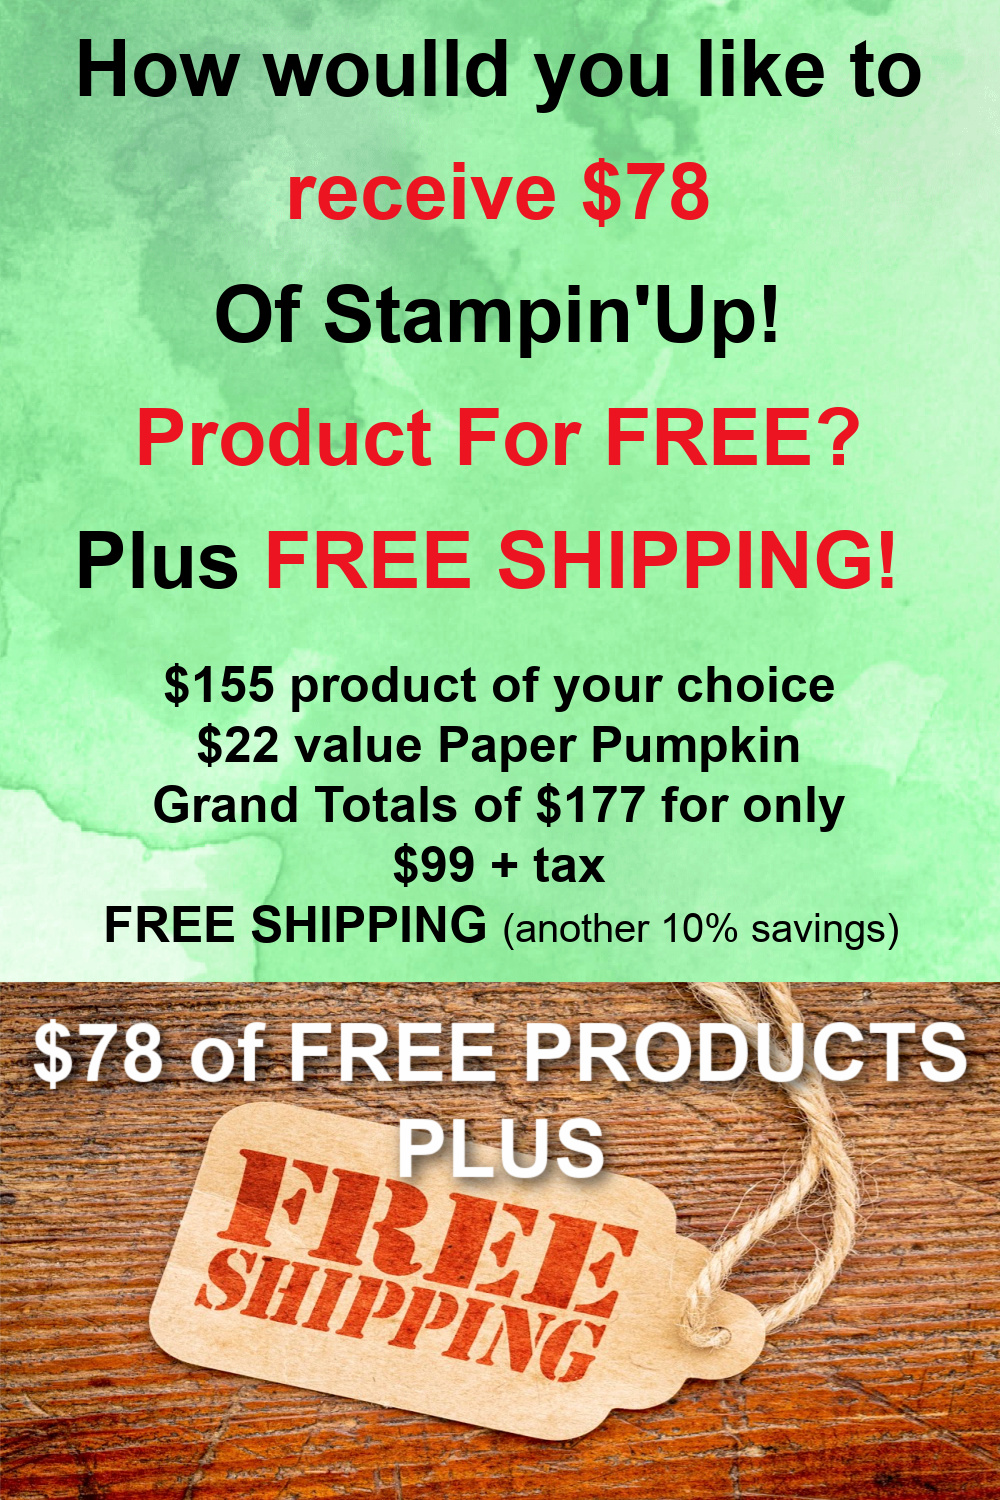 How to join Stampin\'Up! and receive $78 of free product.